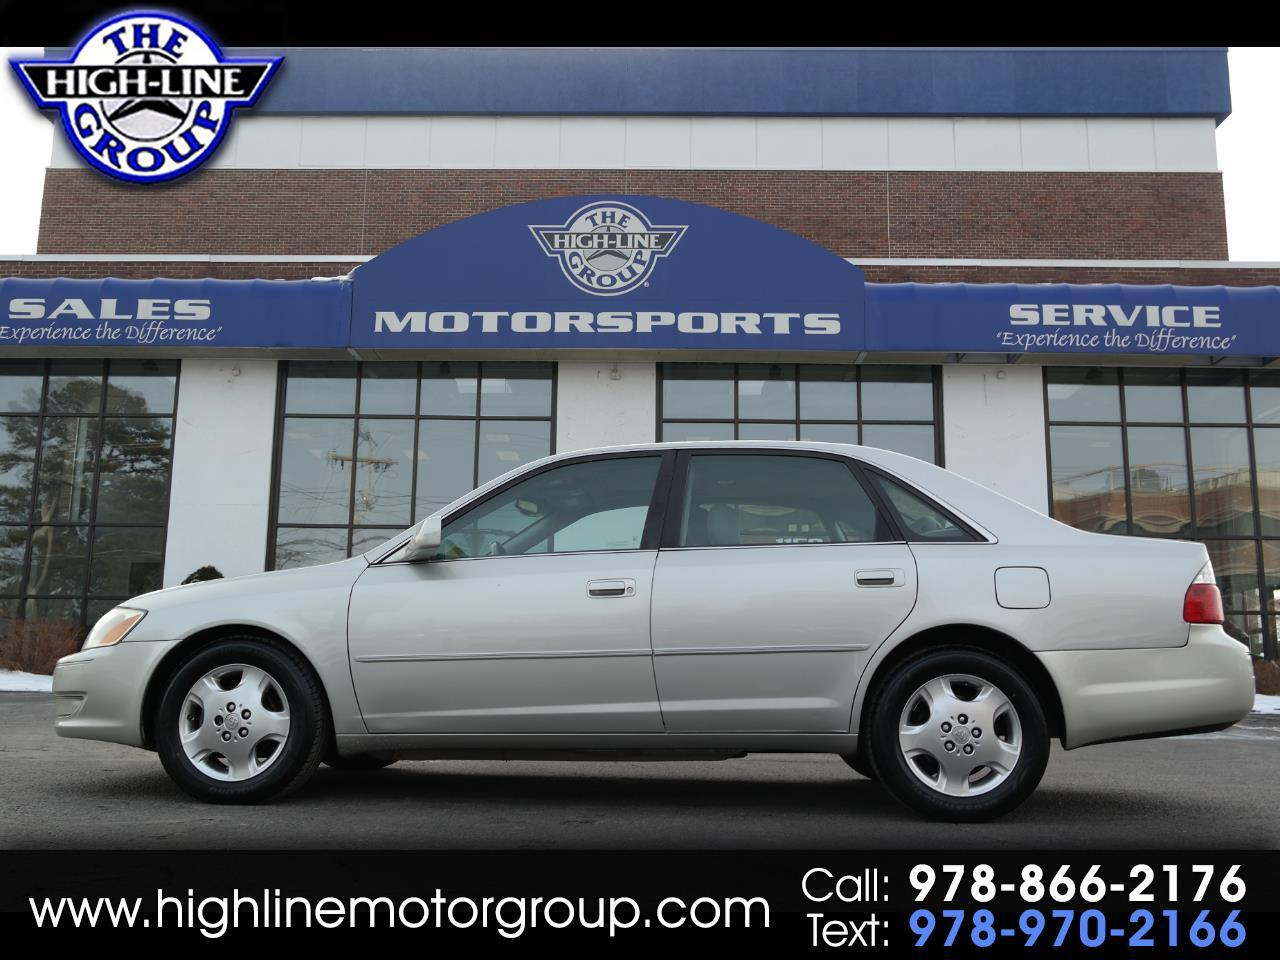 2004 Toyota Avalon 4dr Sdn XLS w/Bench Seat (Natl)